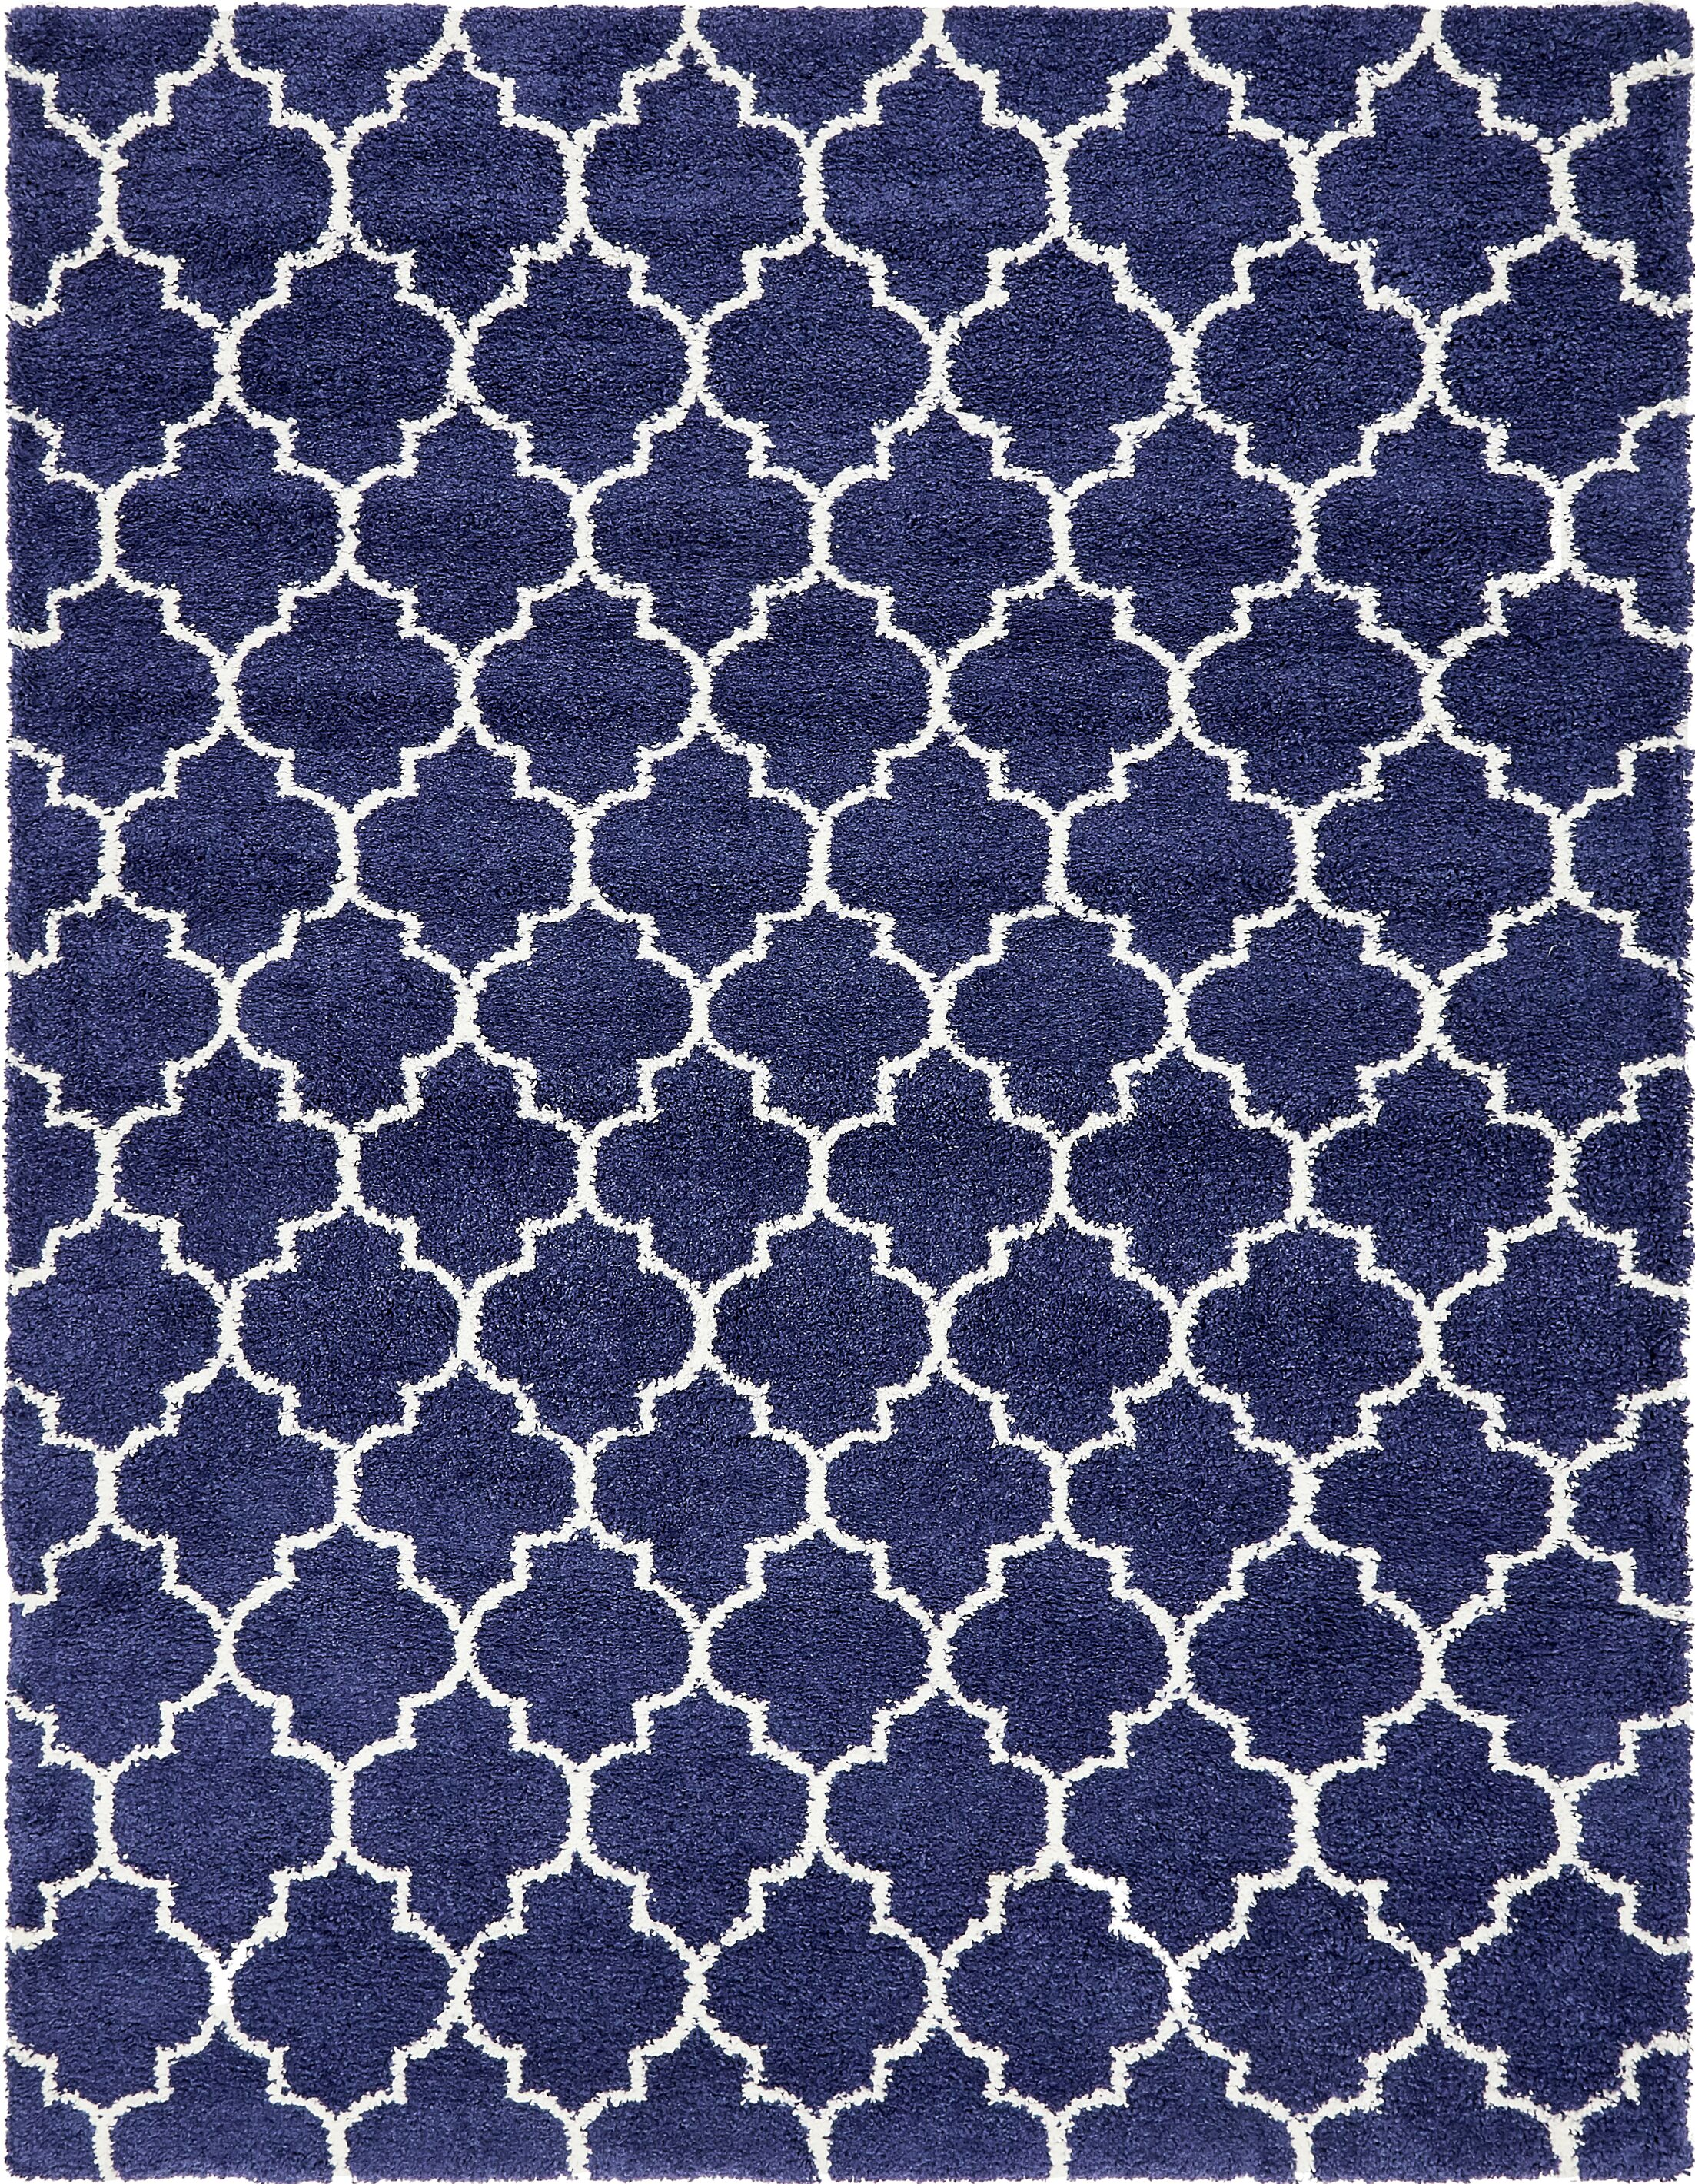 Cynthiana  Navy Blue Area Rug Rug Size: Rectangle 9' x 12'